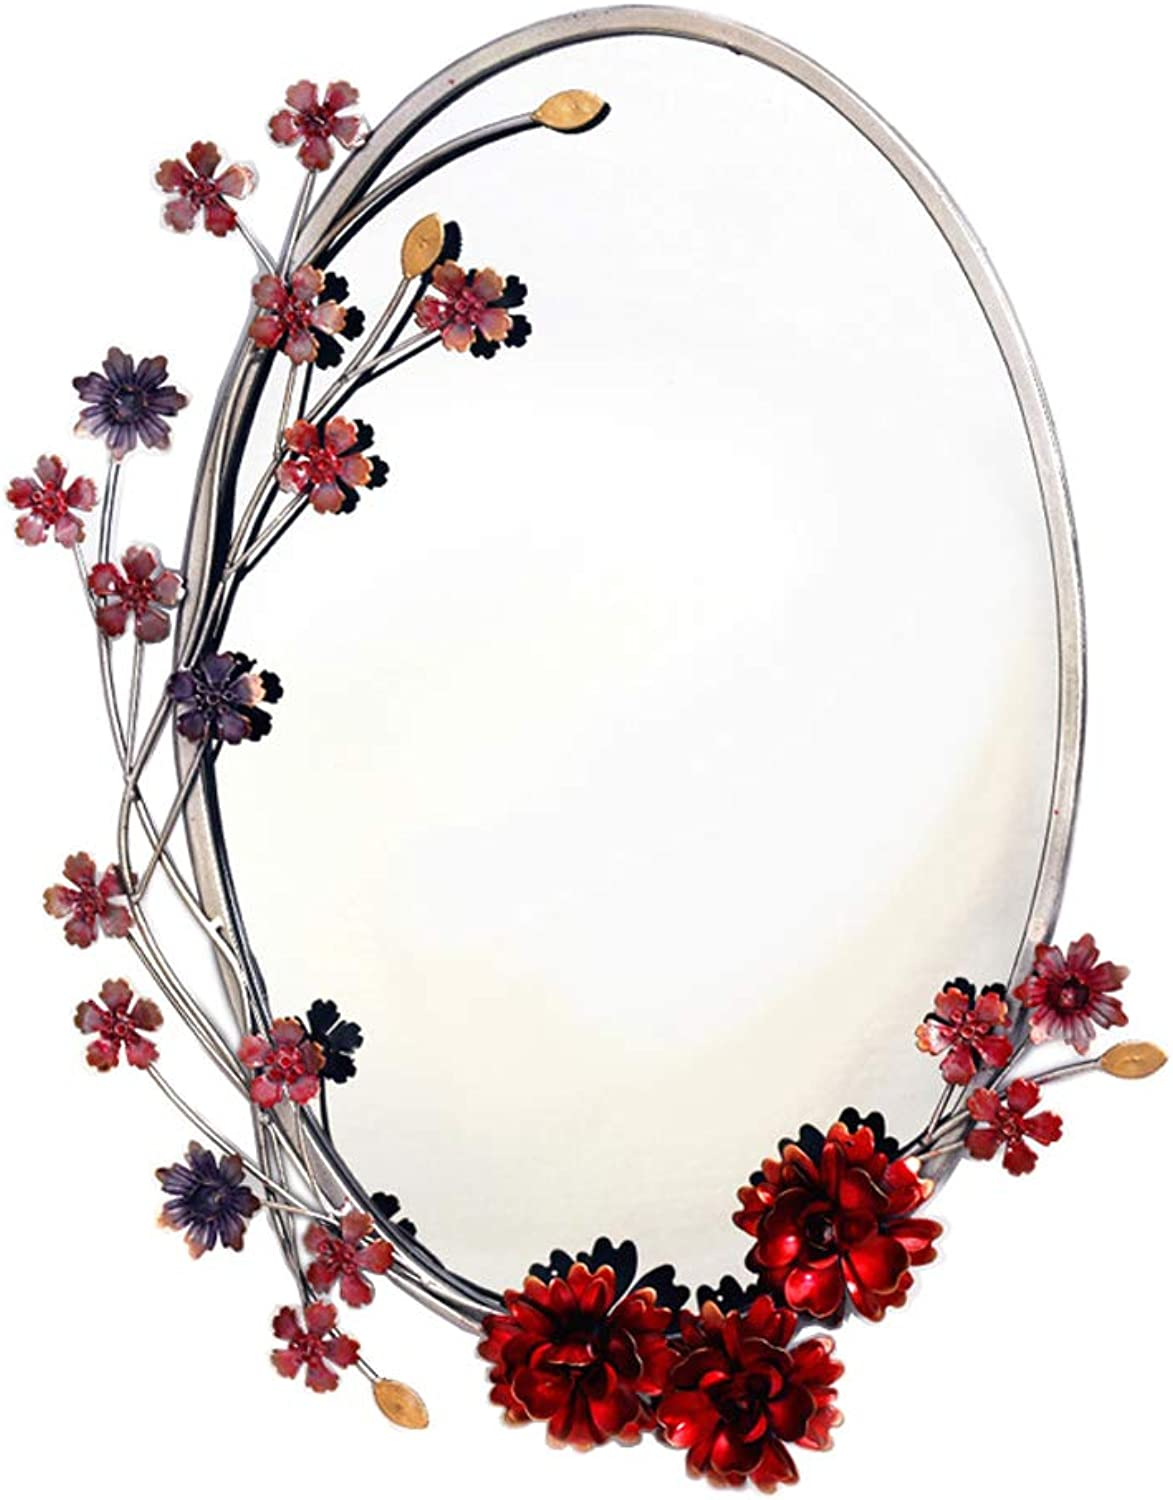 Oval Vanity Wall Mirror Bathroom Makeup Mirror Ornate Decorative Framed Living Room Bedroom Hallway Entryways Wall-Mounted (19.7 inch x 15 inch)